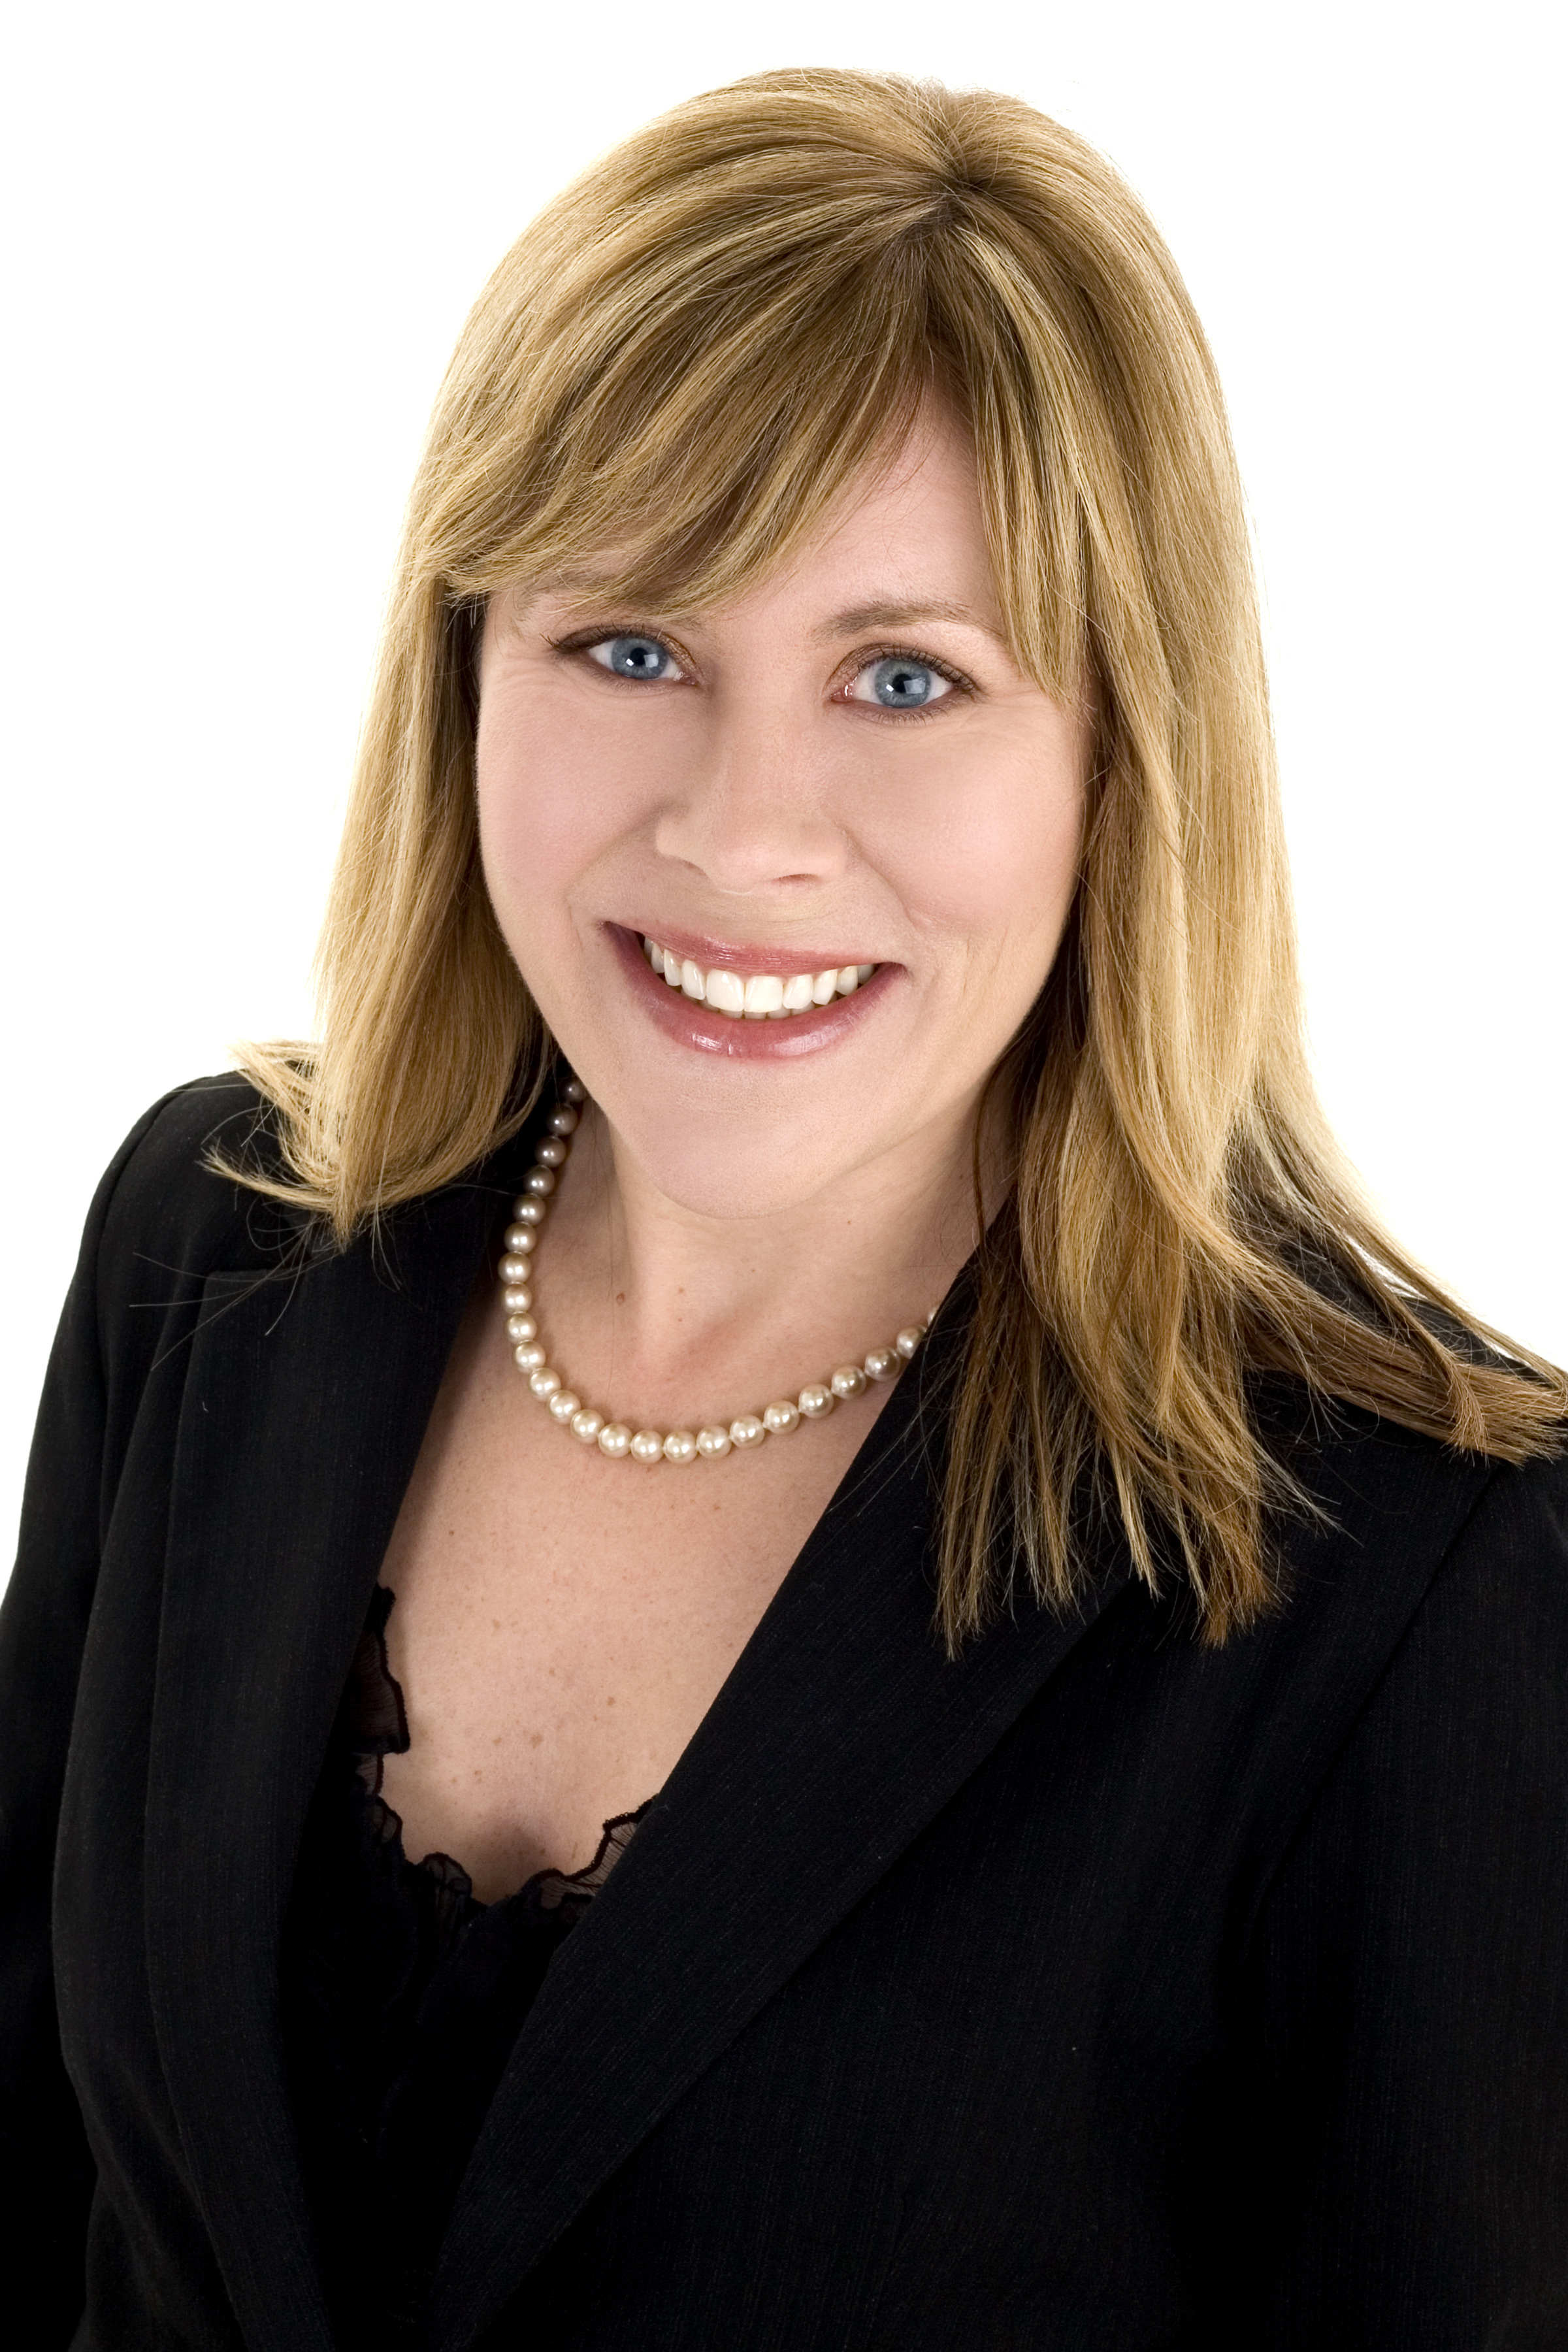 Michelle Drover, Premiere Mortgage Centre